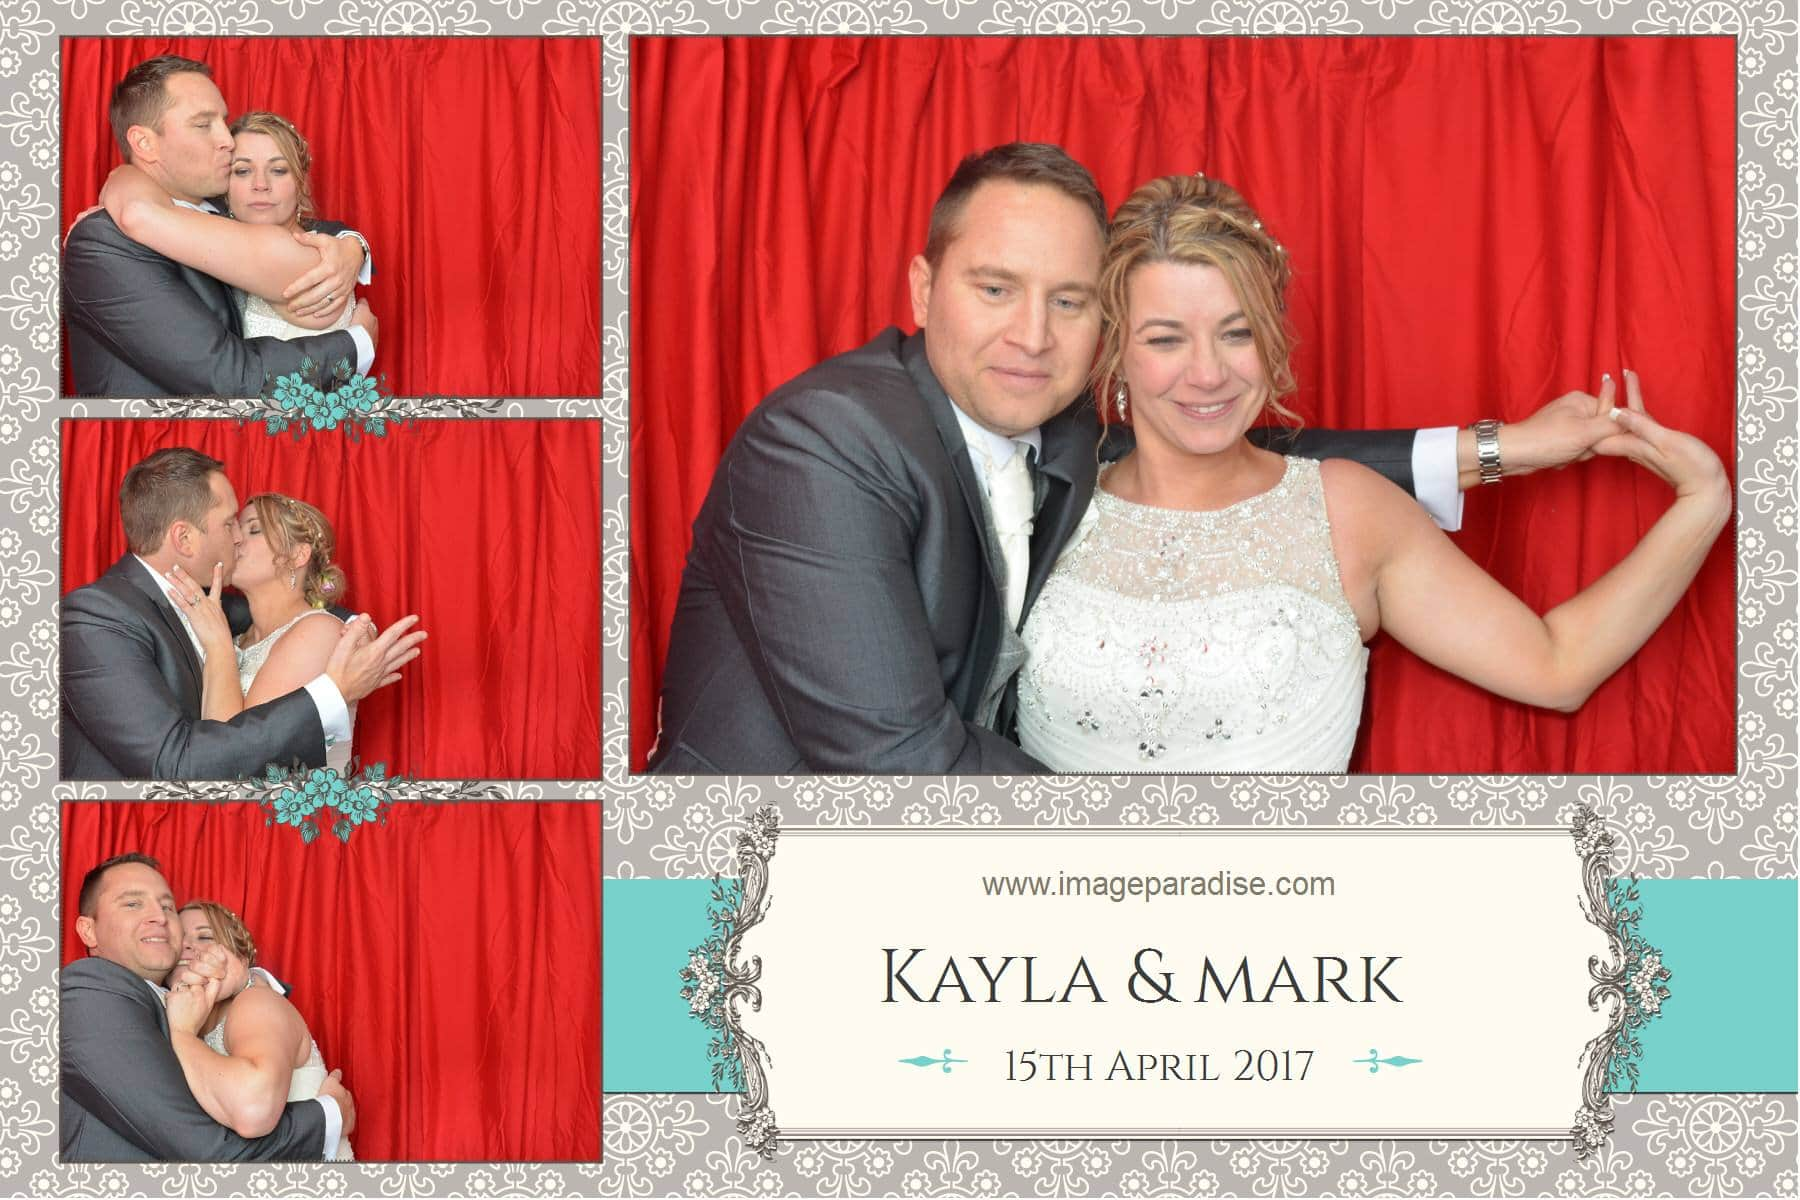 Bride and groom in a red curtain photo booth Bradford on Avon